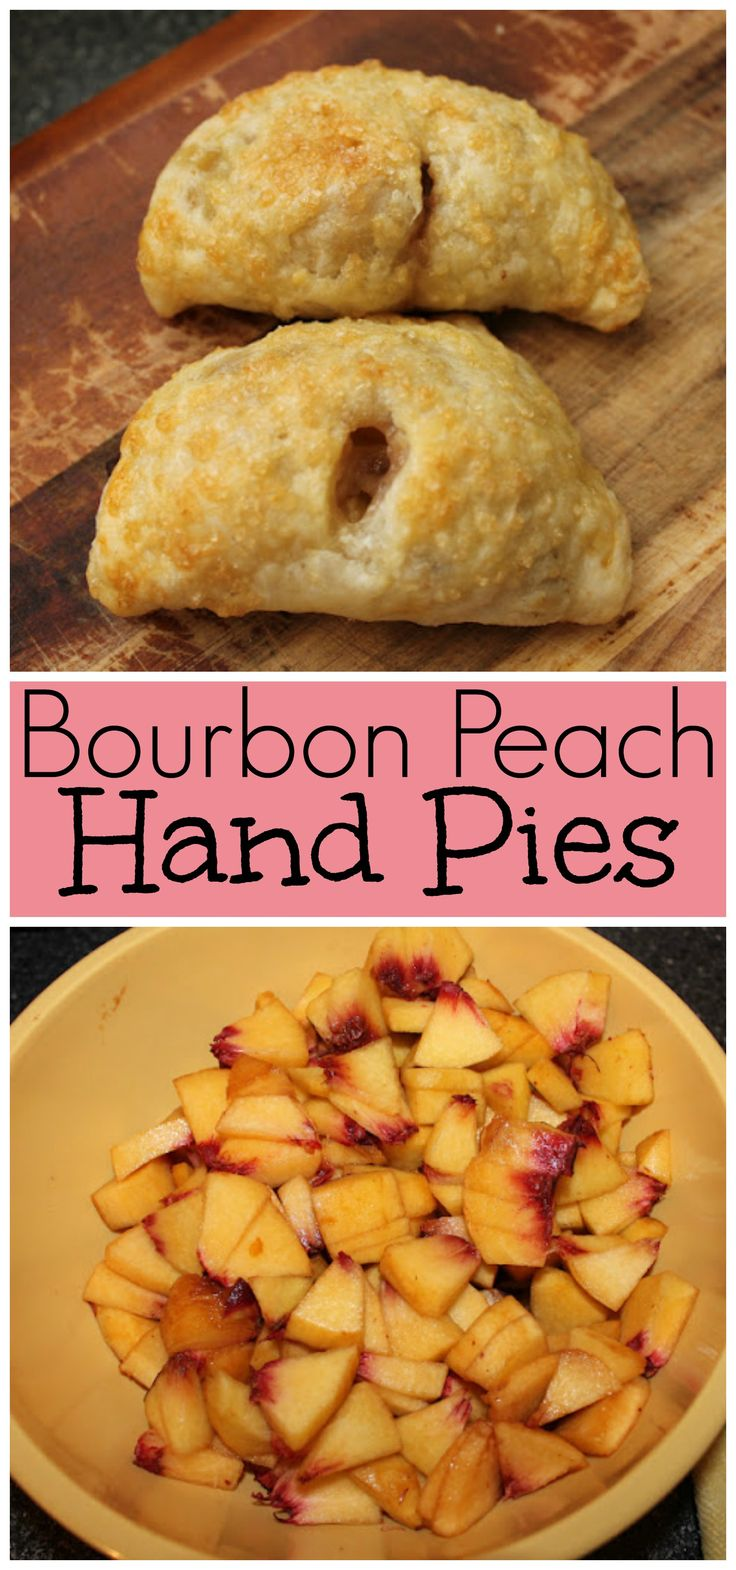 ... ideas about Mini Peach Pies on Pinterest | Pies, Mini Pies and Peaches